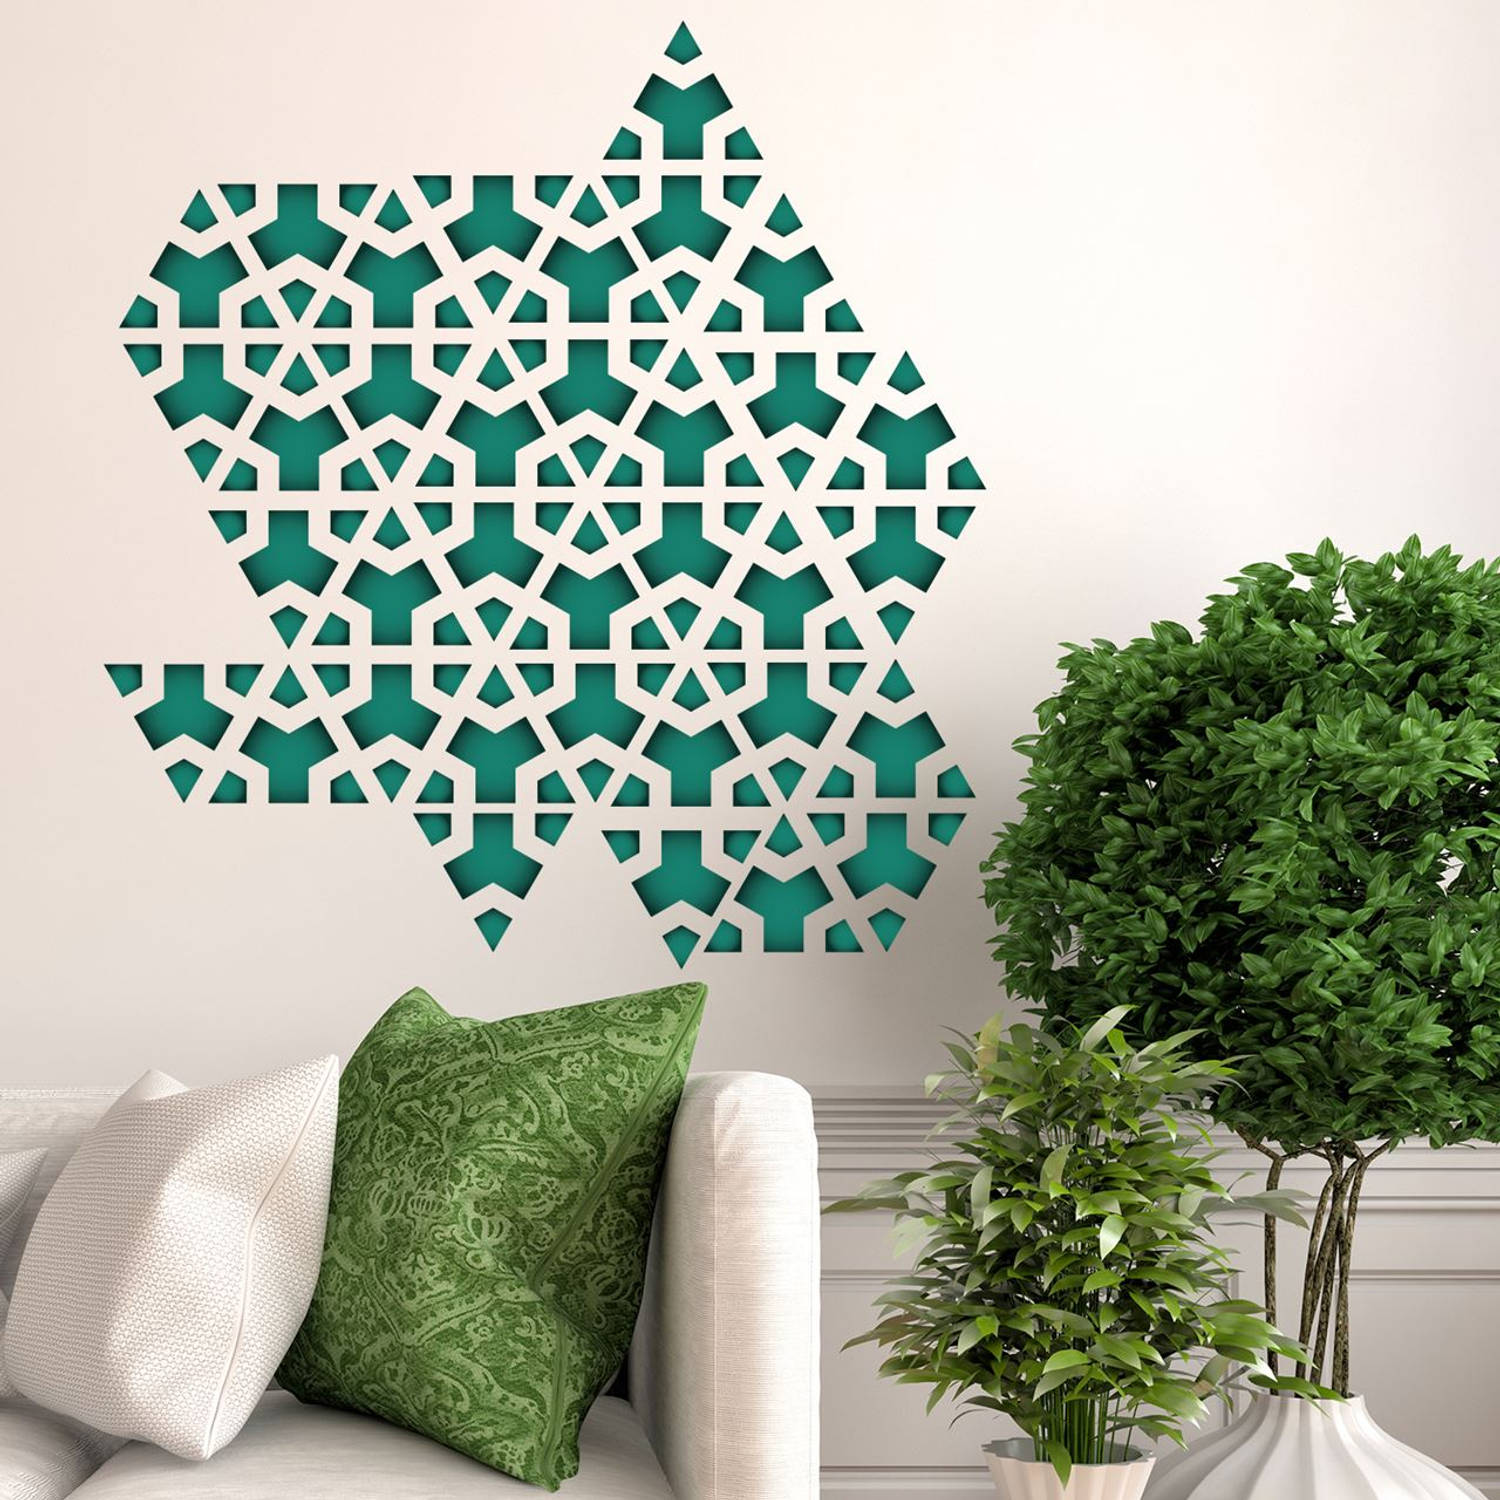 Wall Mural Green Triangle Geometry Pattern